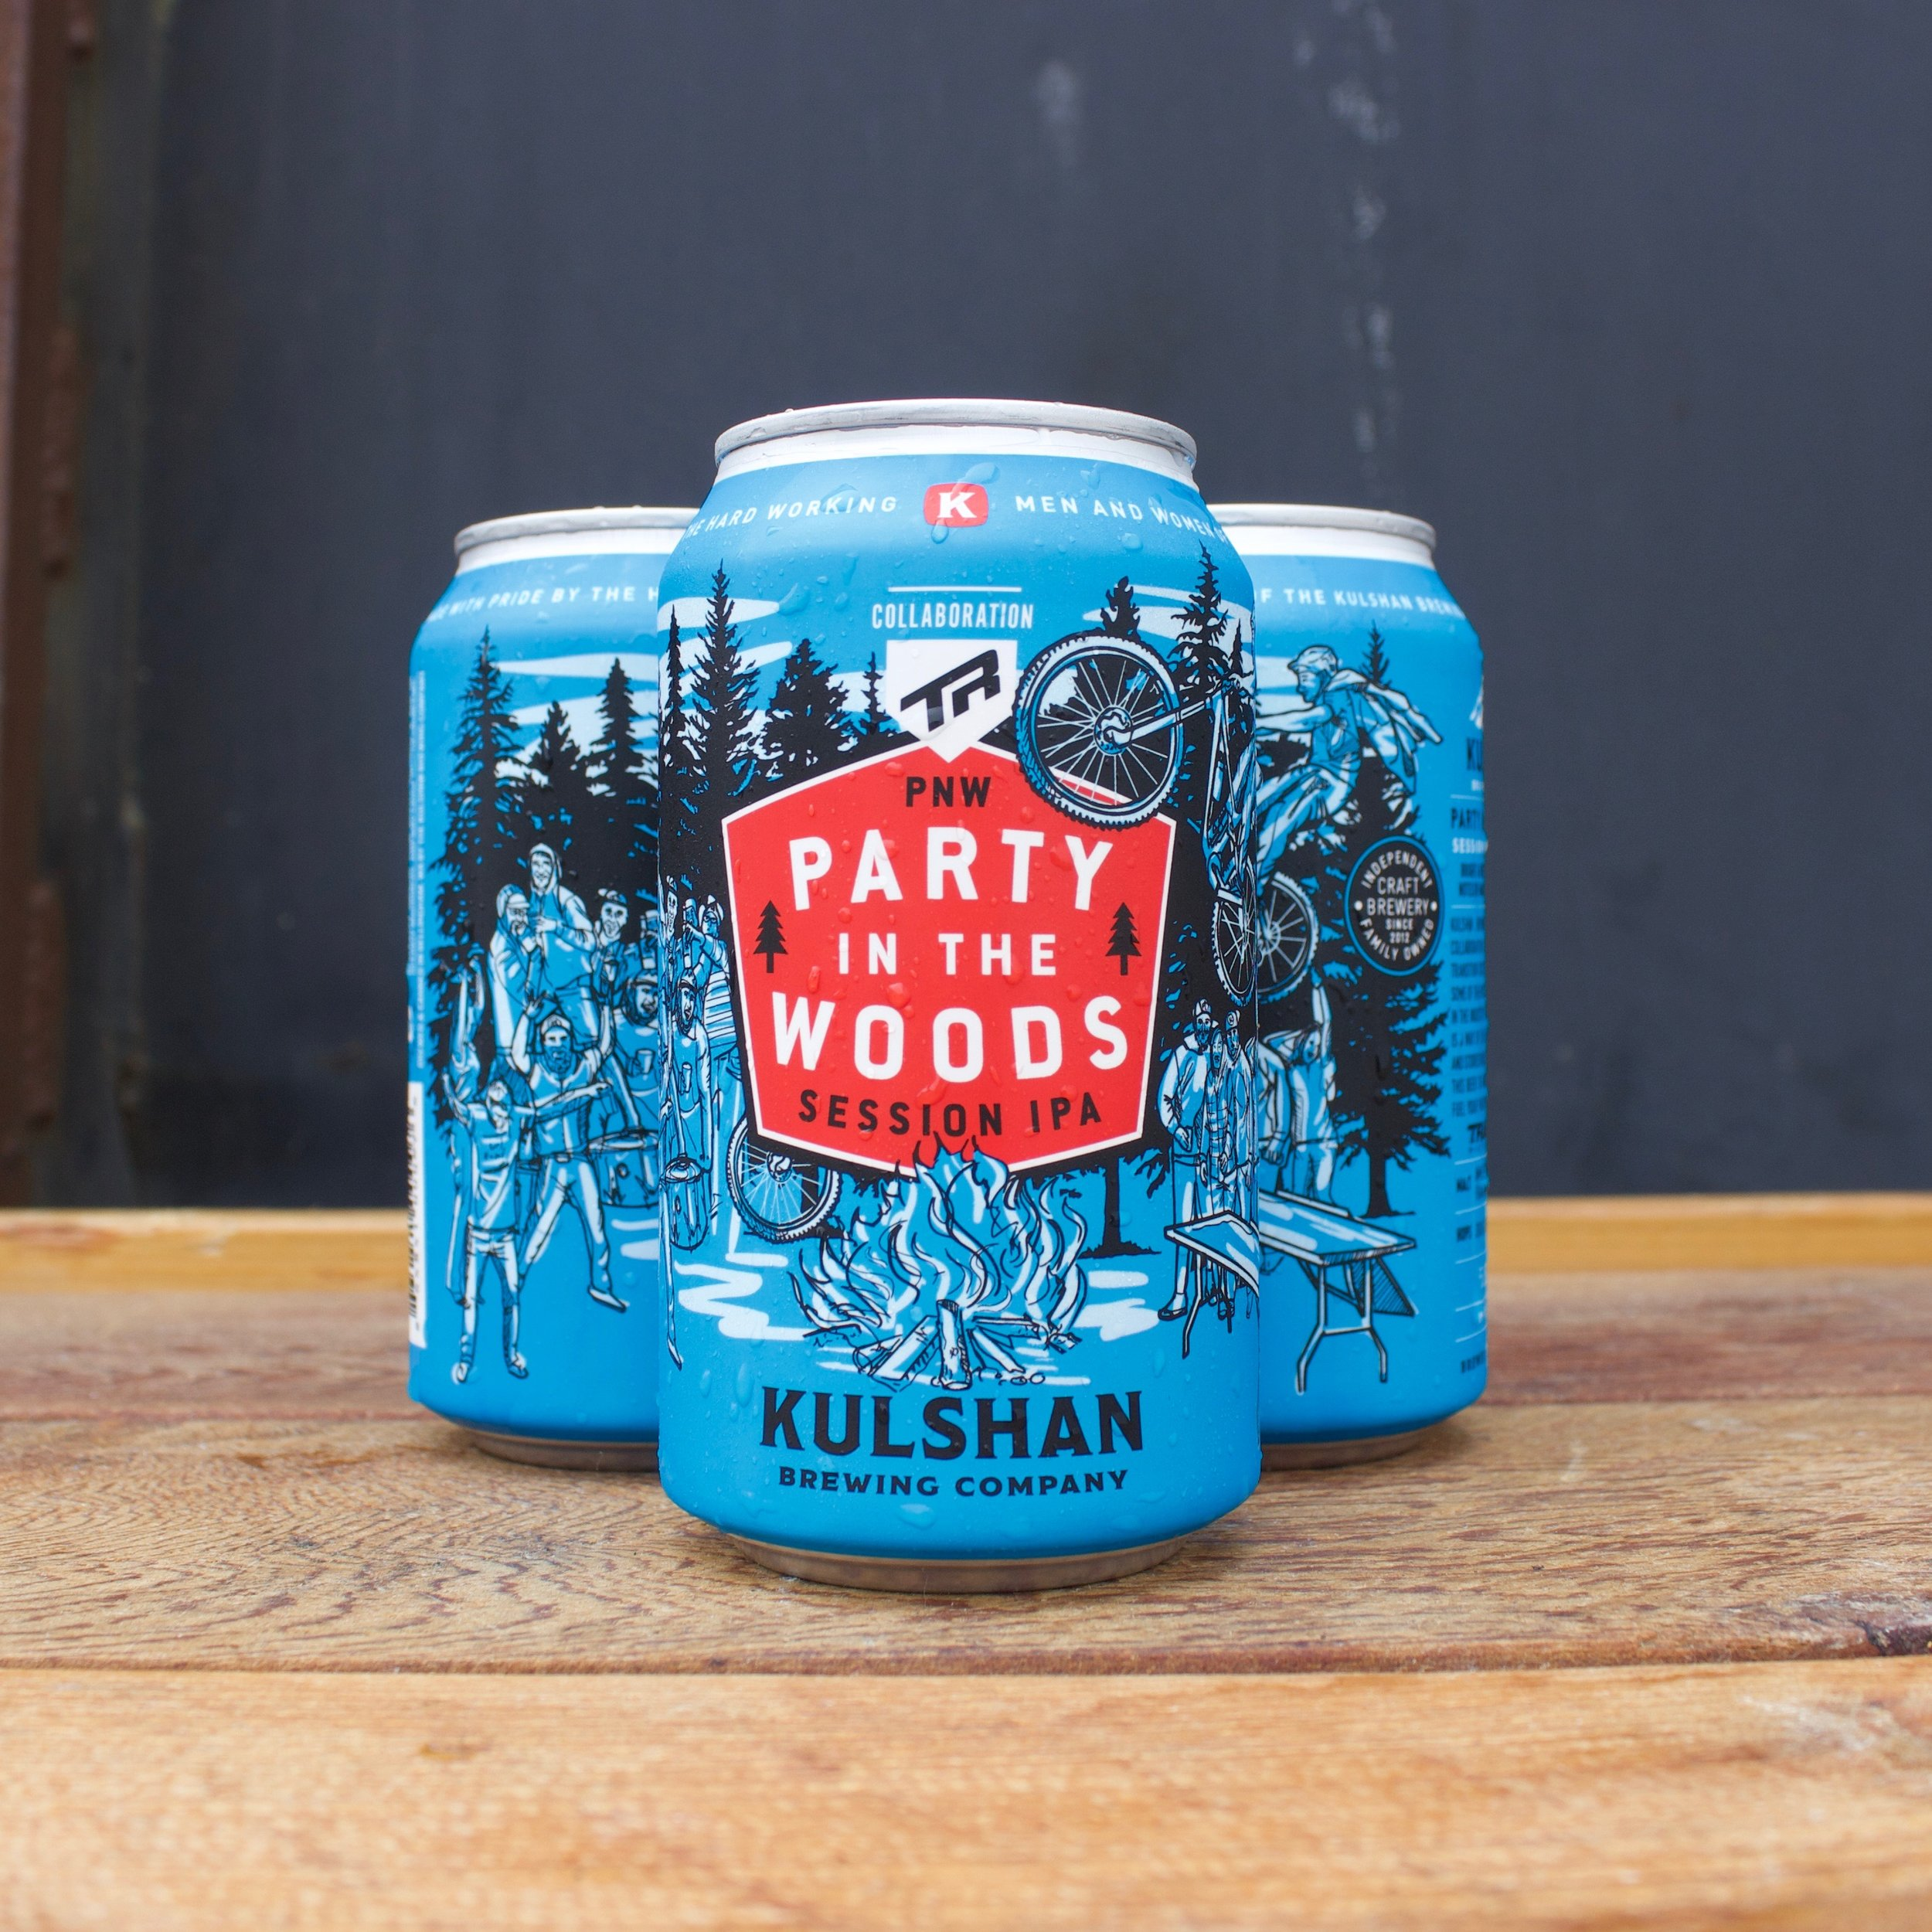 Party In The Woods Session IPA from Kulshan Brewing Co.